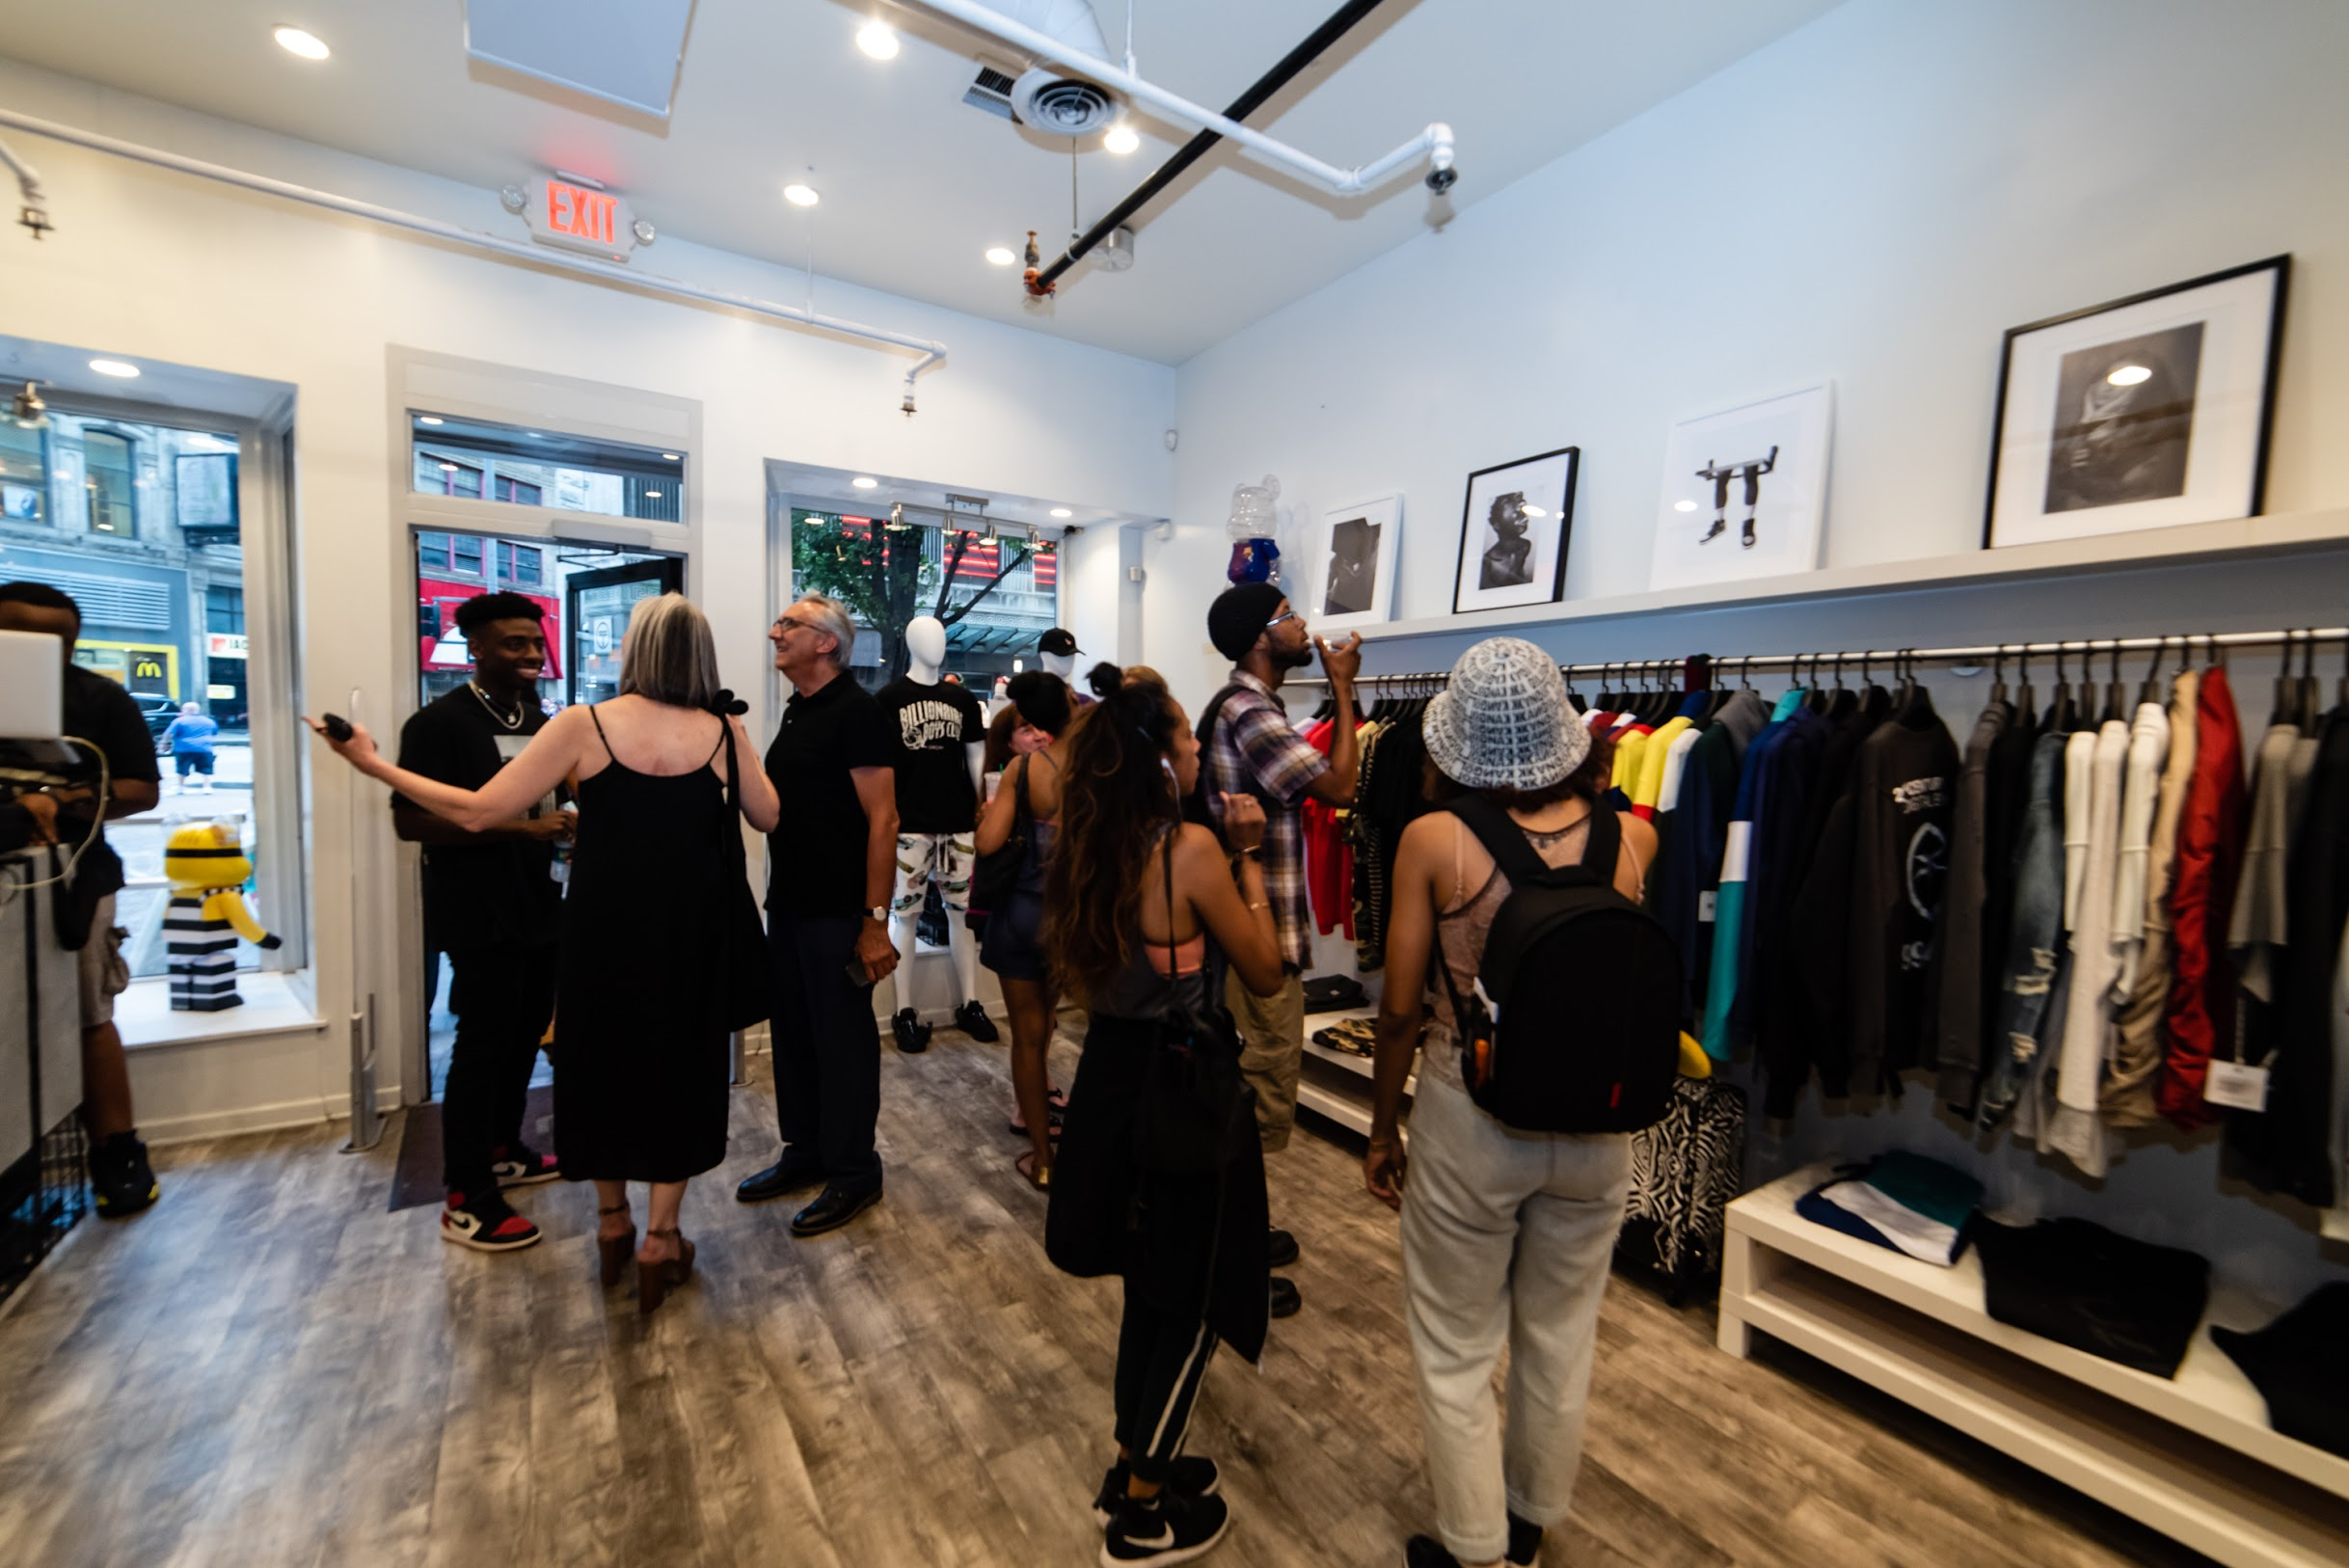 Opening of  24,  an exhibition of the works of Tony Duff, curated by Fay at Social Status in Downtown Pittsburgh, July 2019. Courtesy Tyler Calpin.